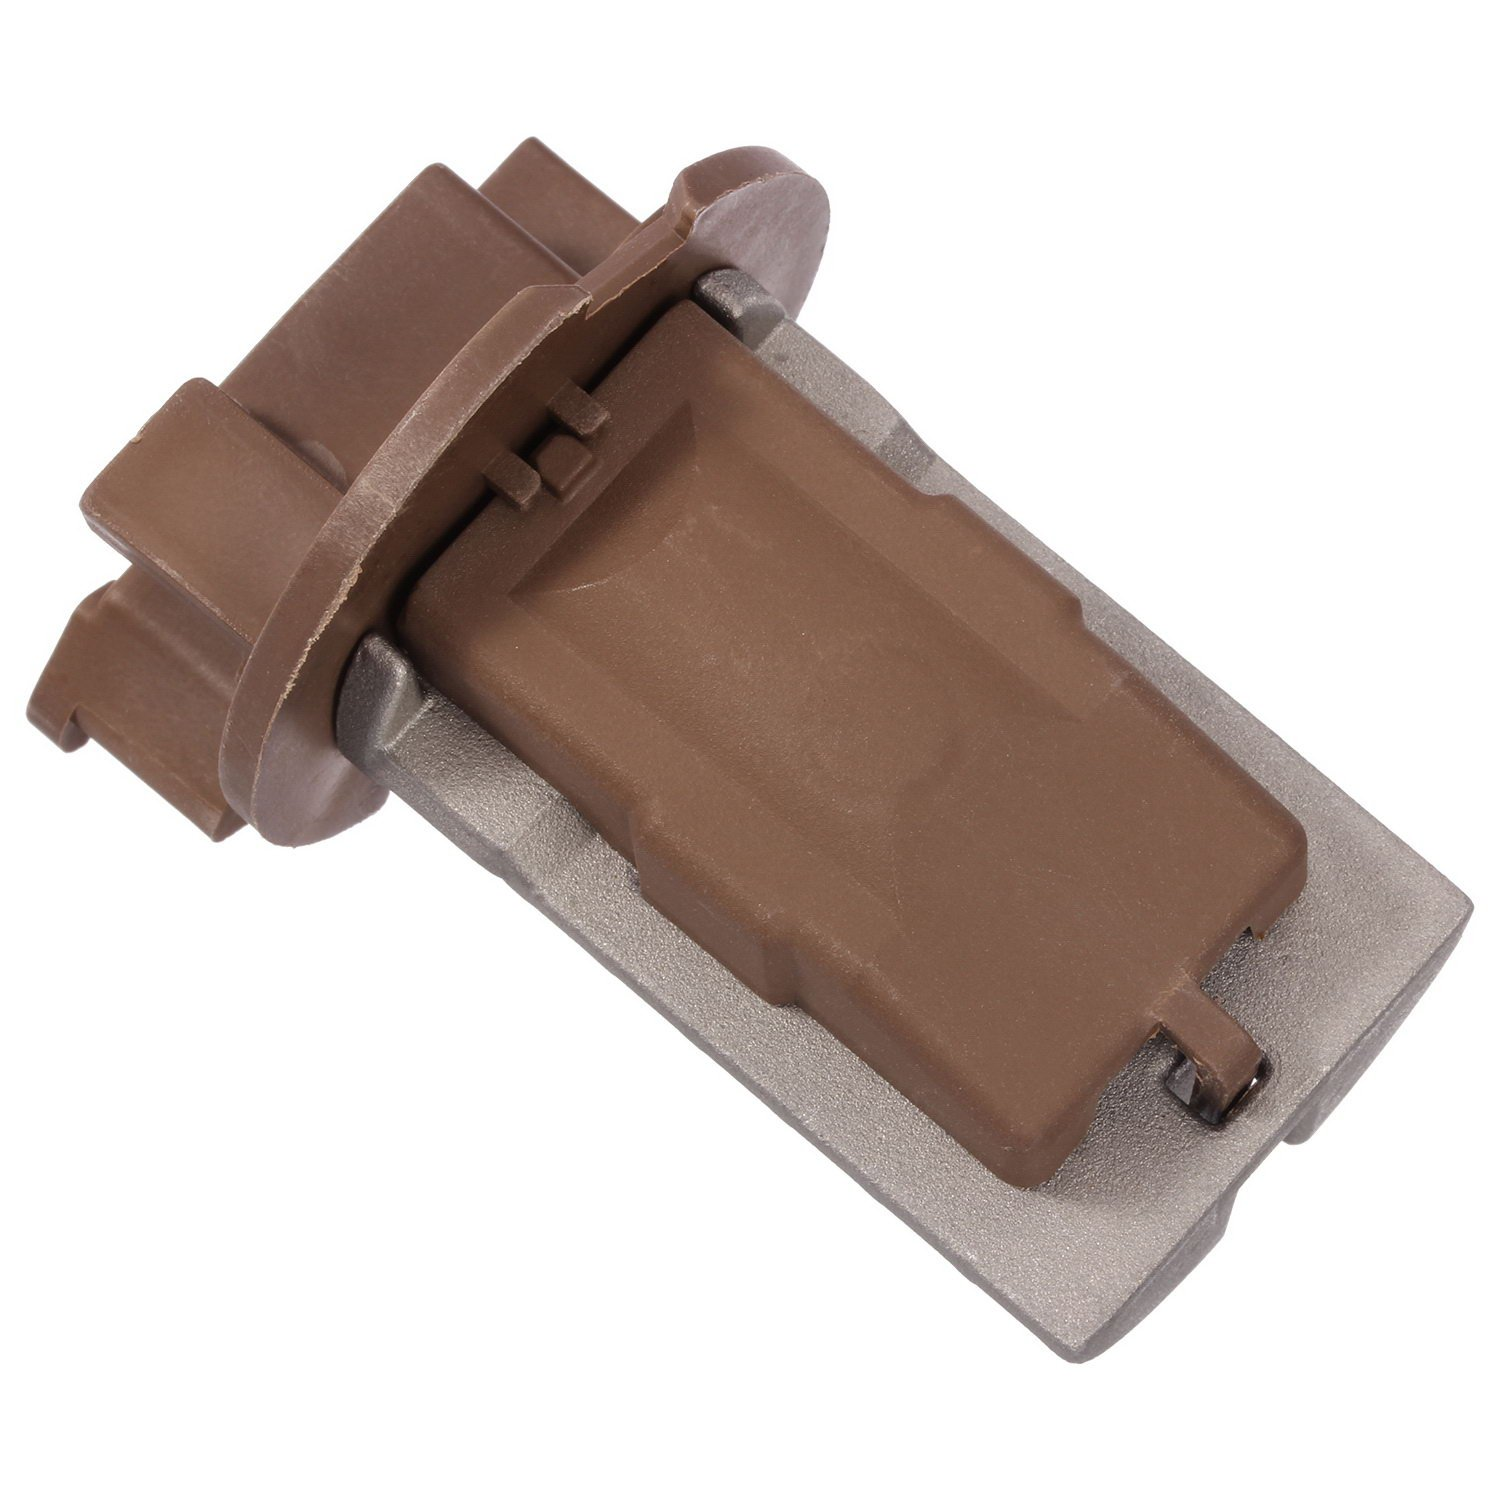 AUTEX Rear A//C Heater Blower Motor Resistor Compatible with 2001 2002 2003 2004 2005 2006 Acura Mdx Blower Resistor 03 04 05 06 07 08 Honda Pilot HVAC Blower Regulator 4P1493 RU364